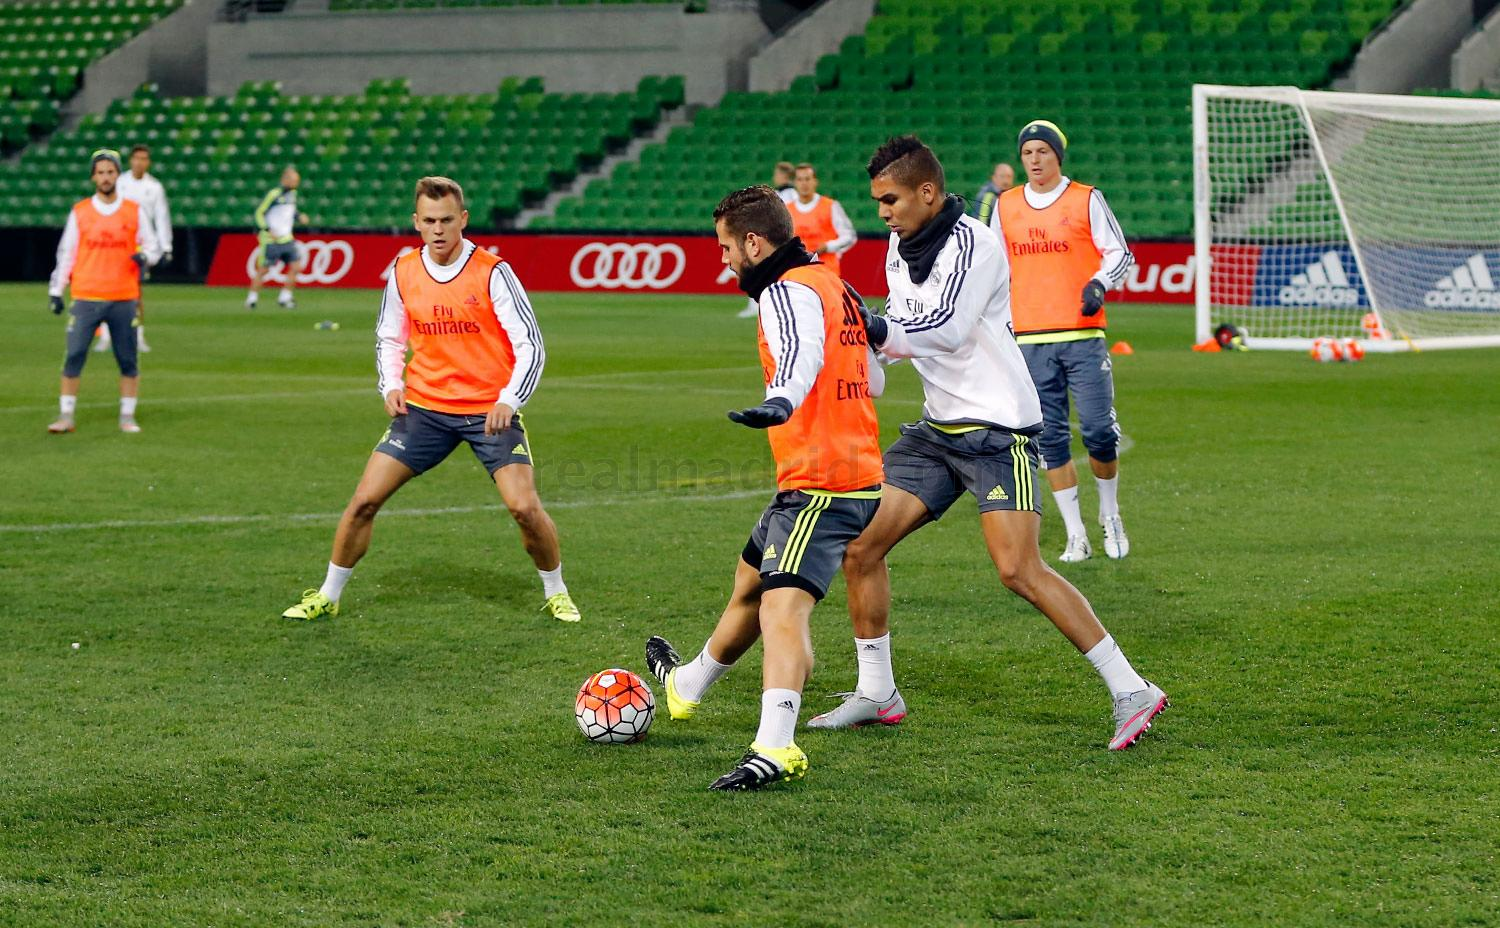 Real Madrid - Entrenamiento del Real Madrid - 21-07-2015